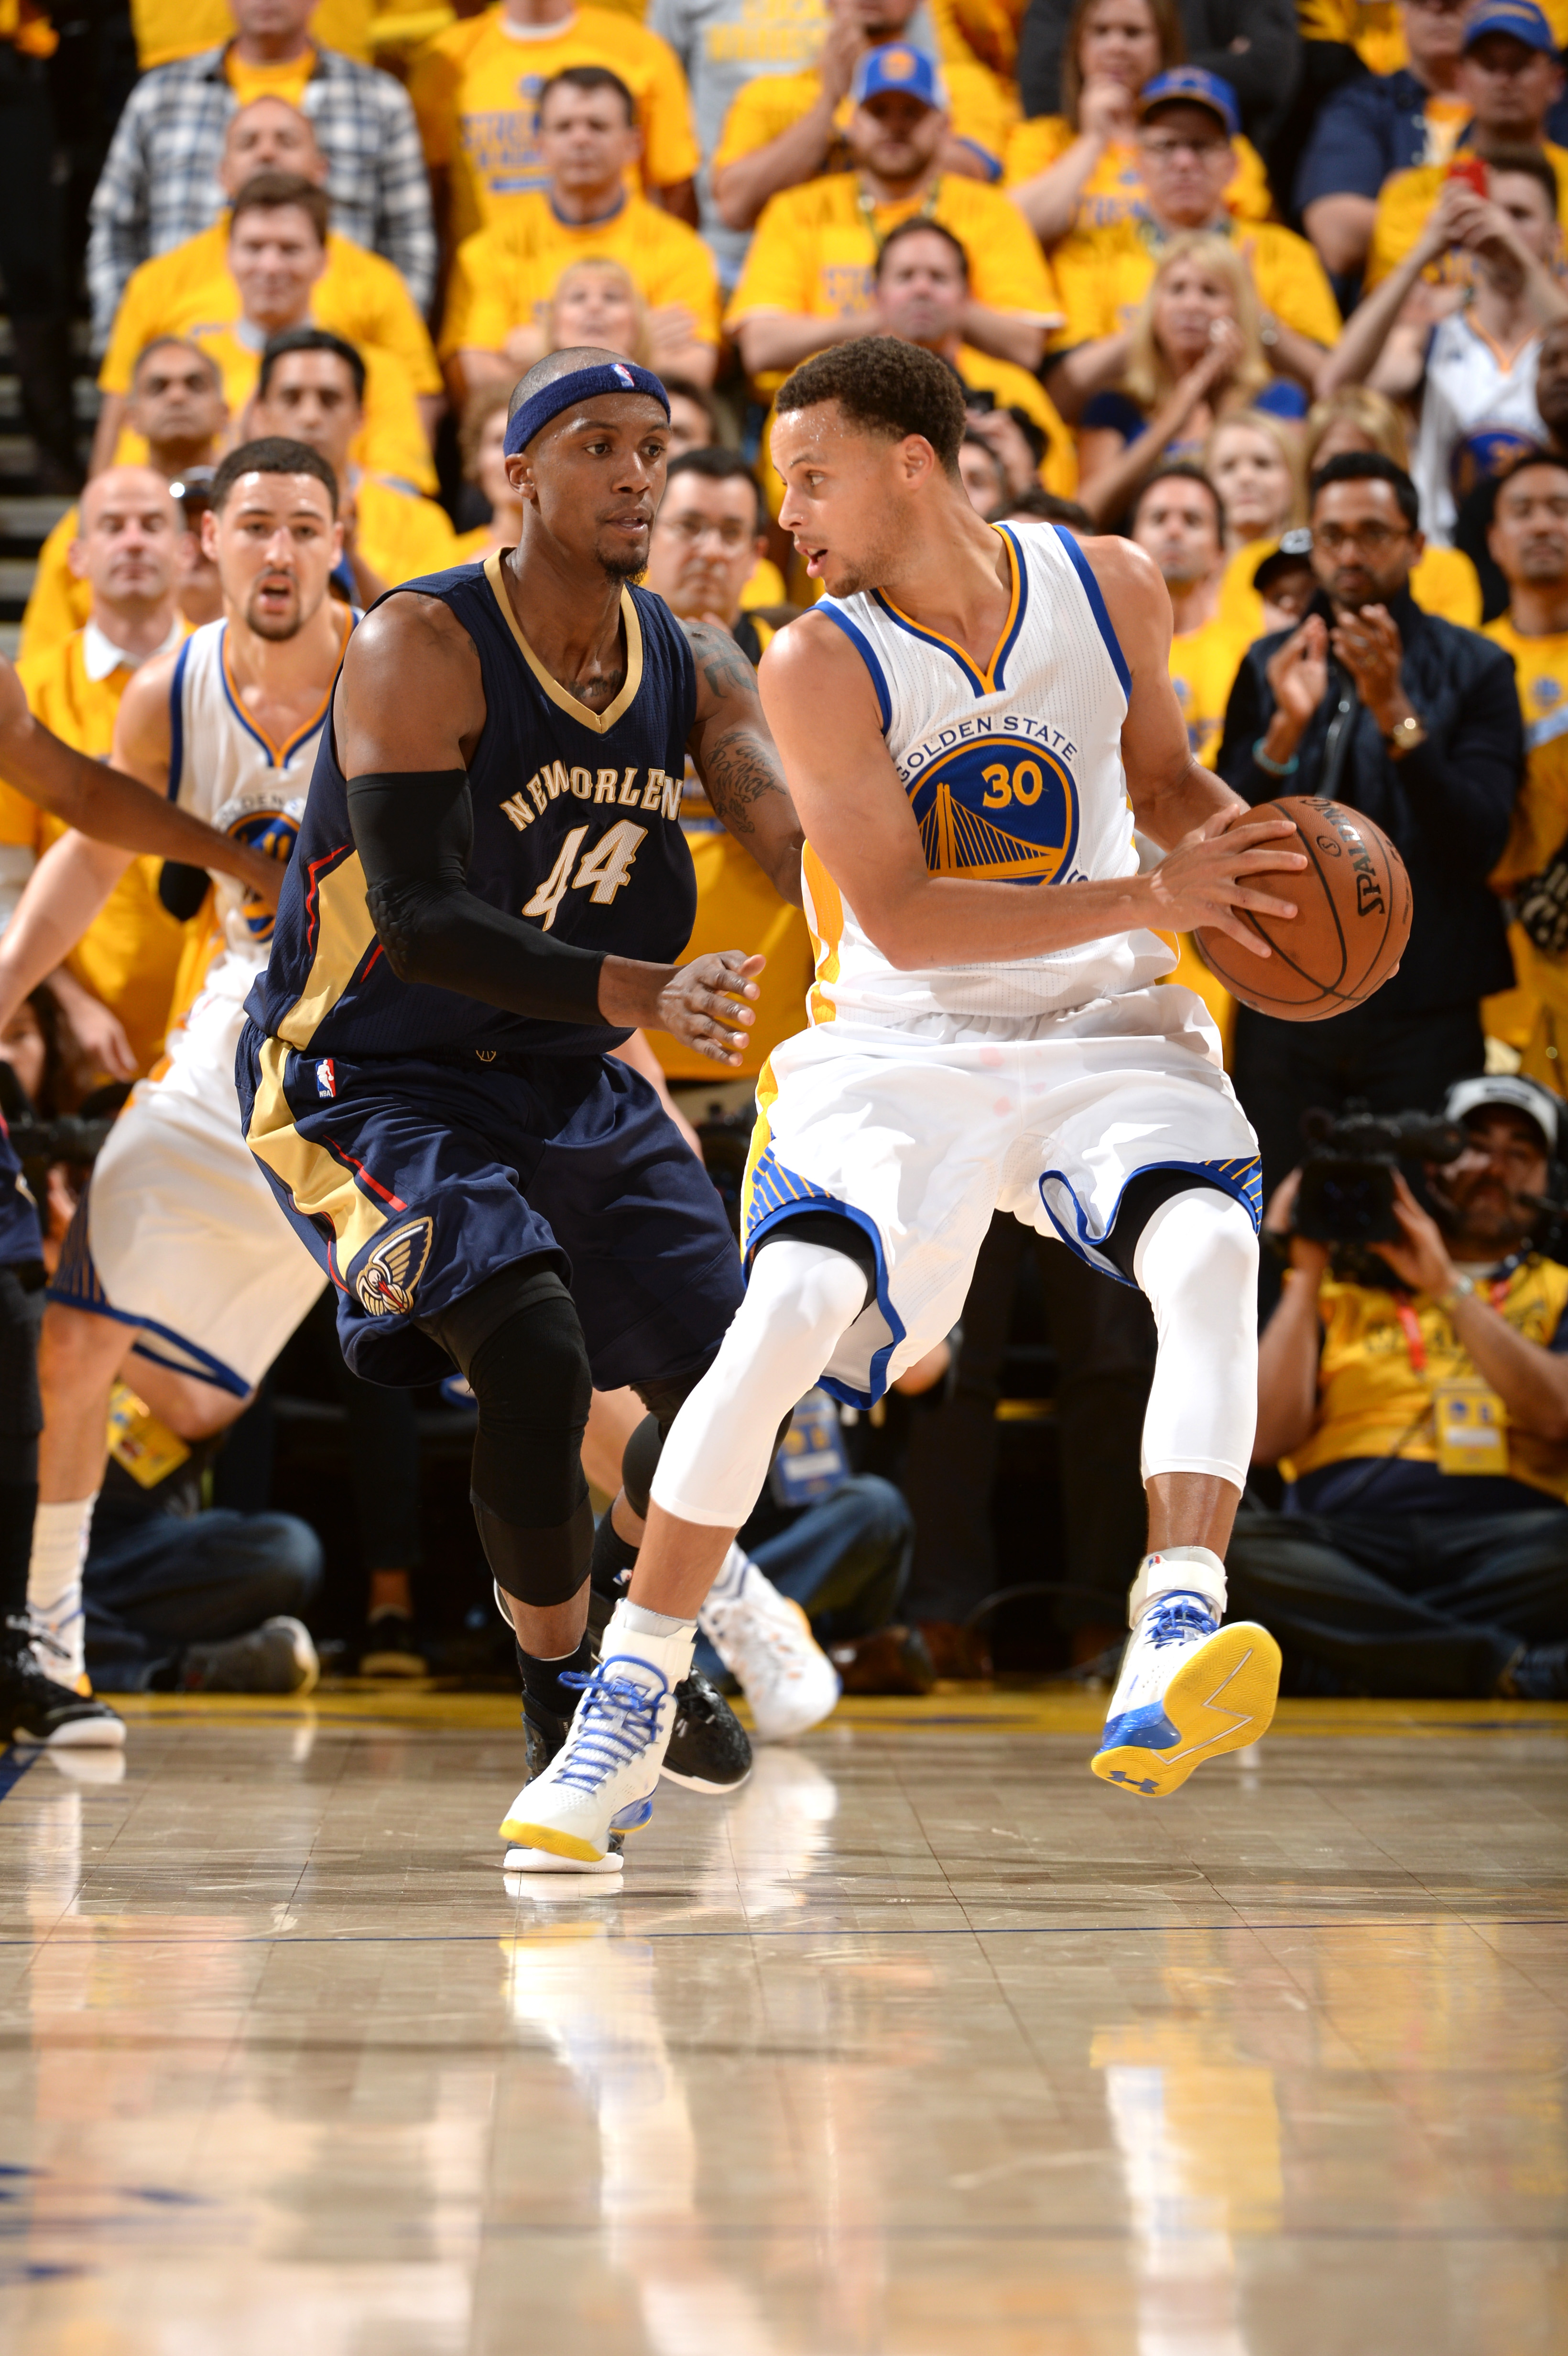 OAKLAND, CA - APRIL 20: Stephen Curry #30 of the Golden State Warriors handles the ball against the New Orleans Pelicans during Game Two of the Western Conference Quarterfinals of the 2015 NBA Playoffs on April 20, 2015 at Oracle Arena in Oakland, Califor